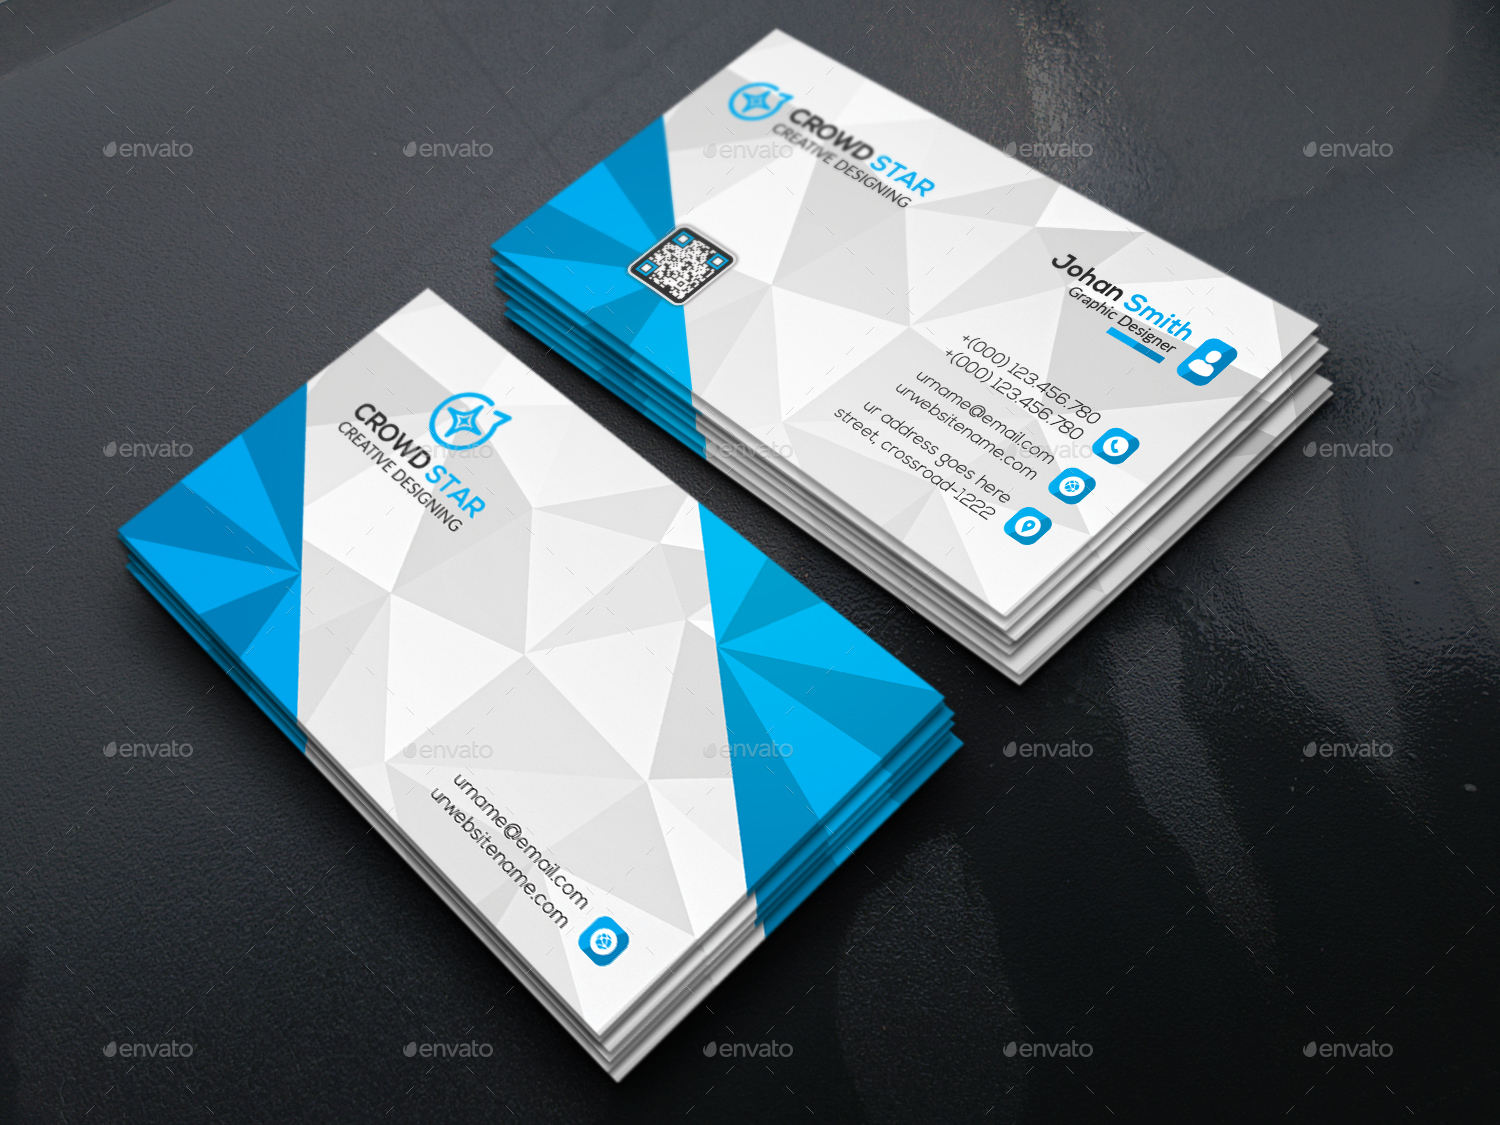 corporate 3d business card business cards print templates 01_preview1jpg 02_preview2jpg - 3 D Business Card